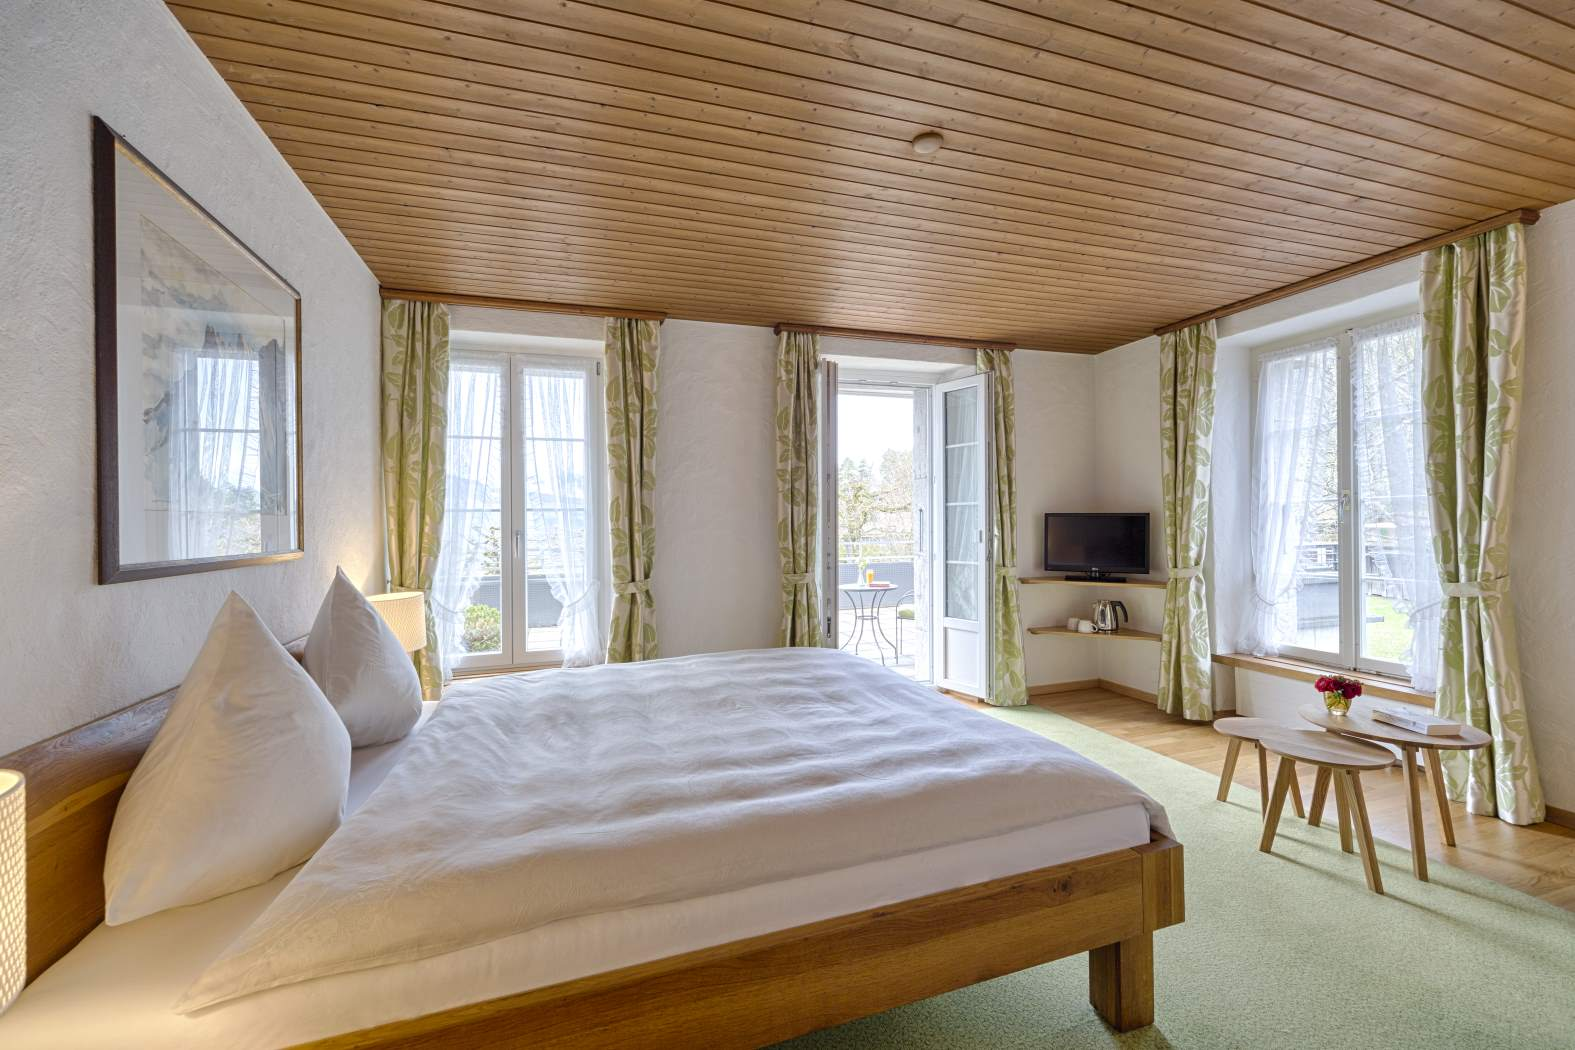 Double room with view to Lake Thun: book best rate on our website www.hotel-neuhaus.ch, Hotel neuhaus zum see, Unterseen, Interlaken